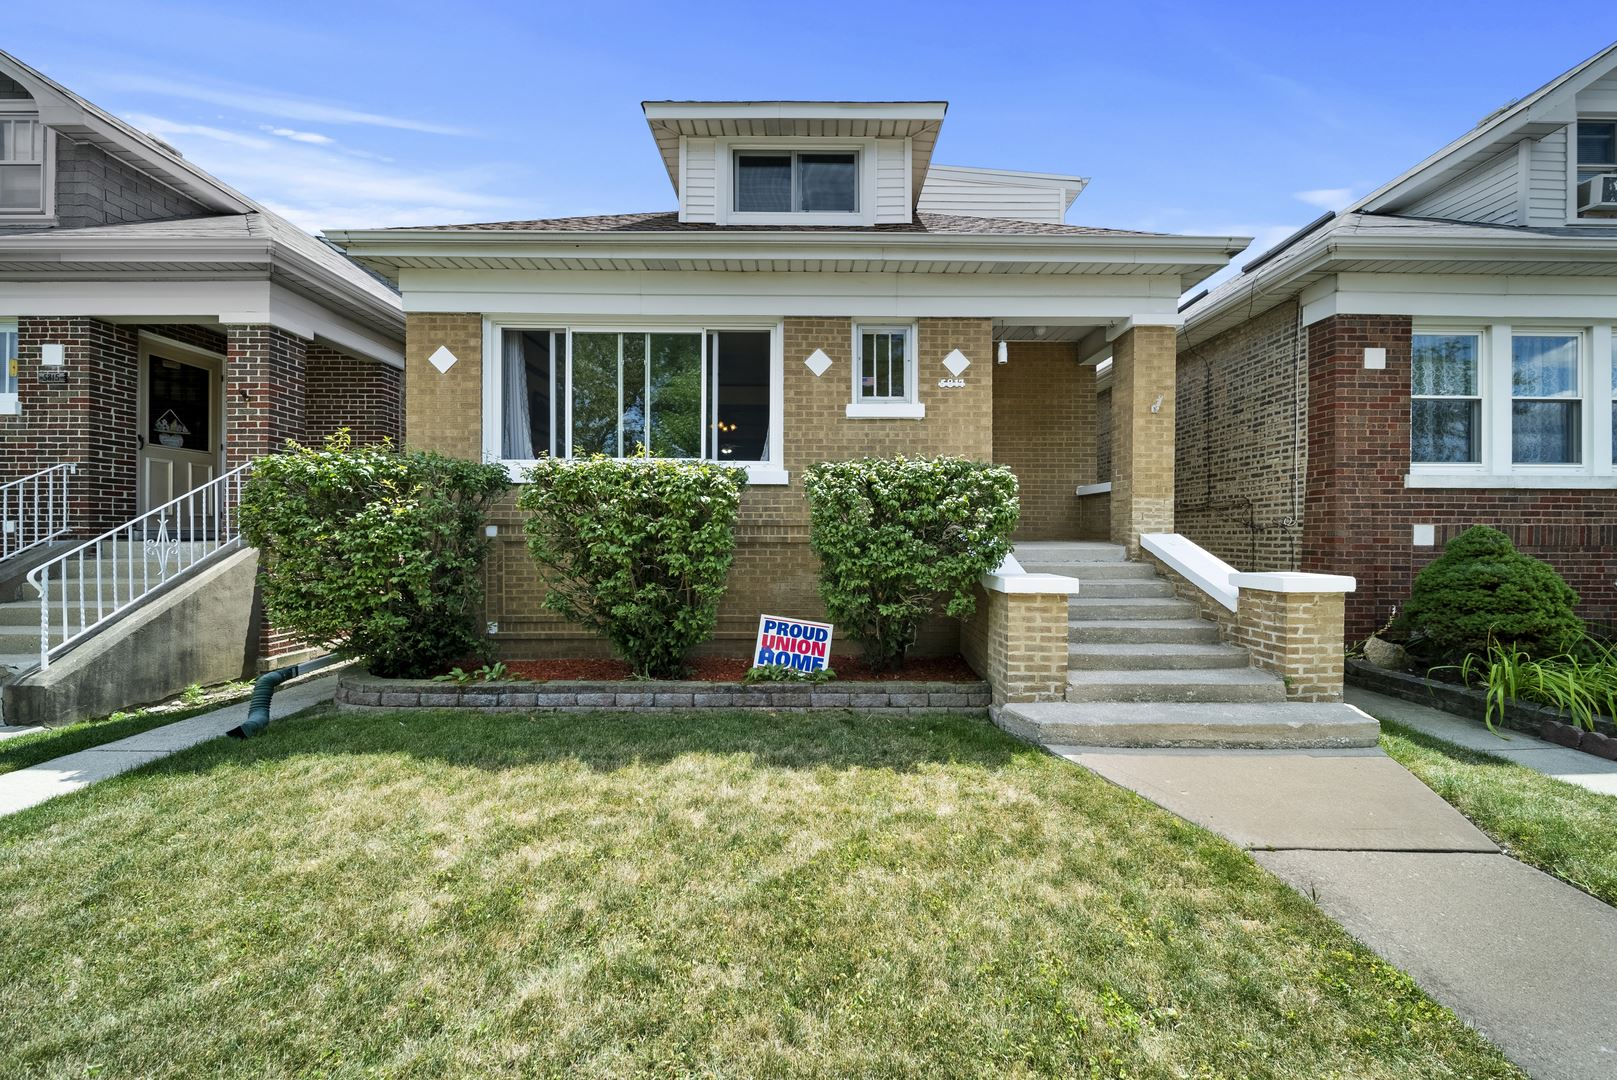 5817 W MELROSE Street, Chicago, IL 60634 - #: 10799833